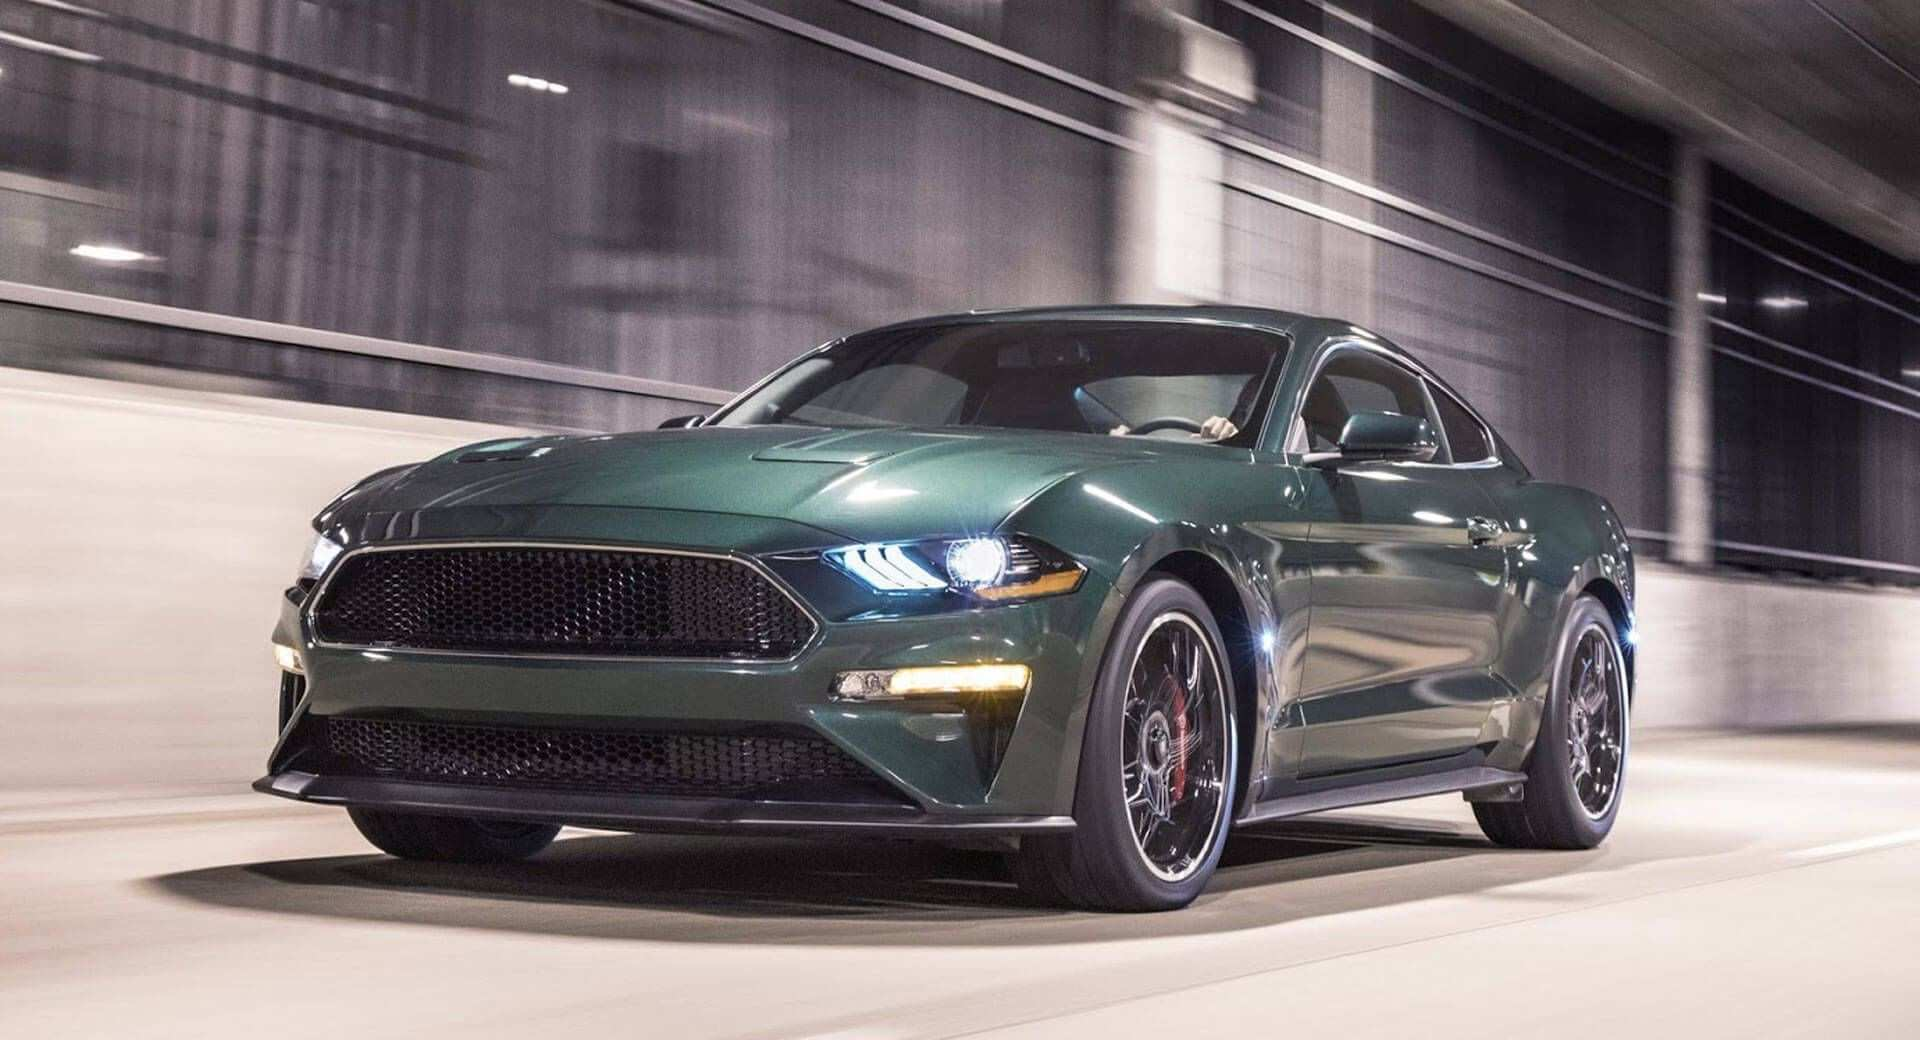 41 All New 2019 The Spy Shots Ford Mustang Svt Gt 500 Specs And Review